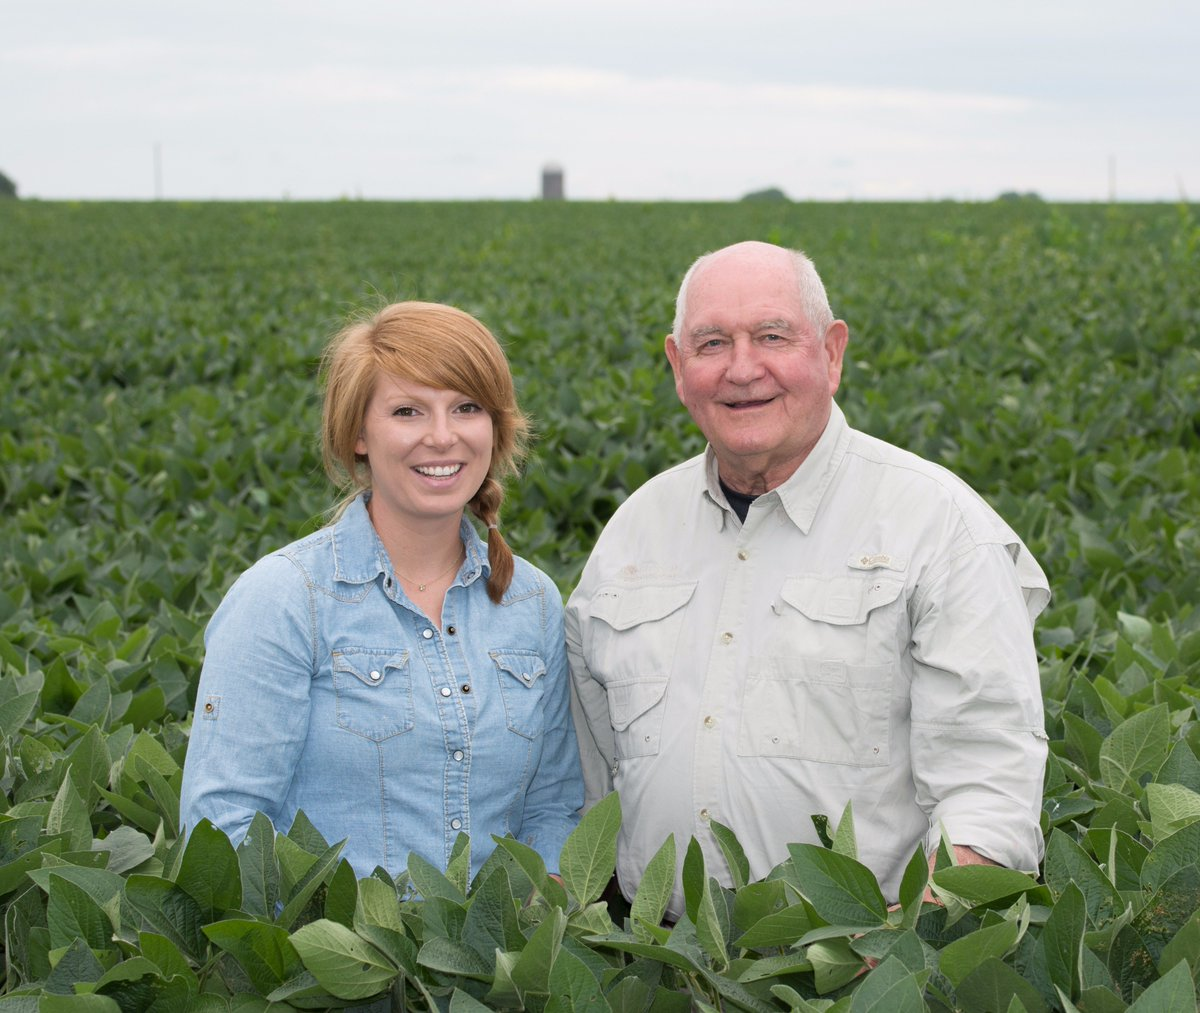 It&#39;s #NationalFarmersDay today, so be sure to #ThankaFarmer, like Kate Danner, who runs her family&#39;s farm near Aleda, Illinois.<br>http://pic.twitter.com/1Lx42asQYS